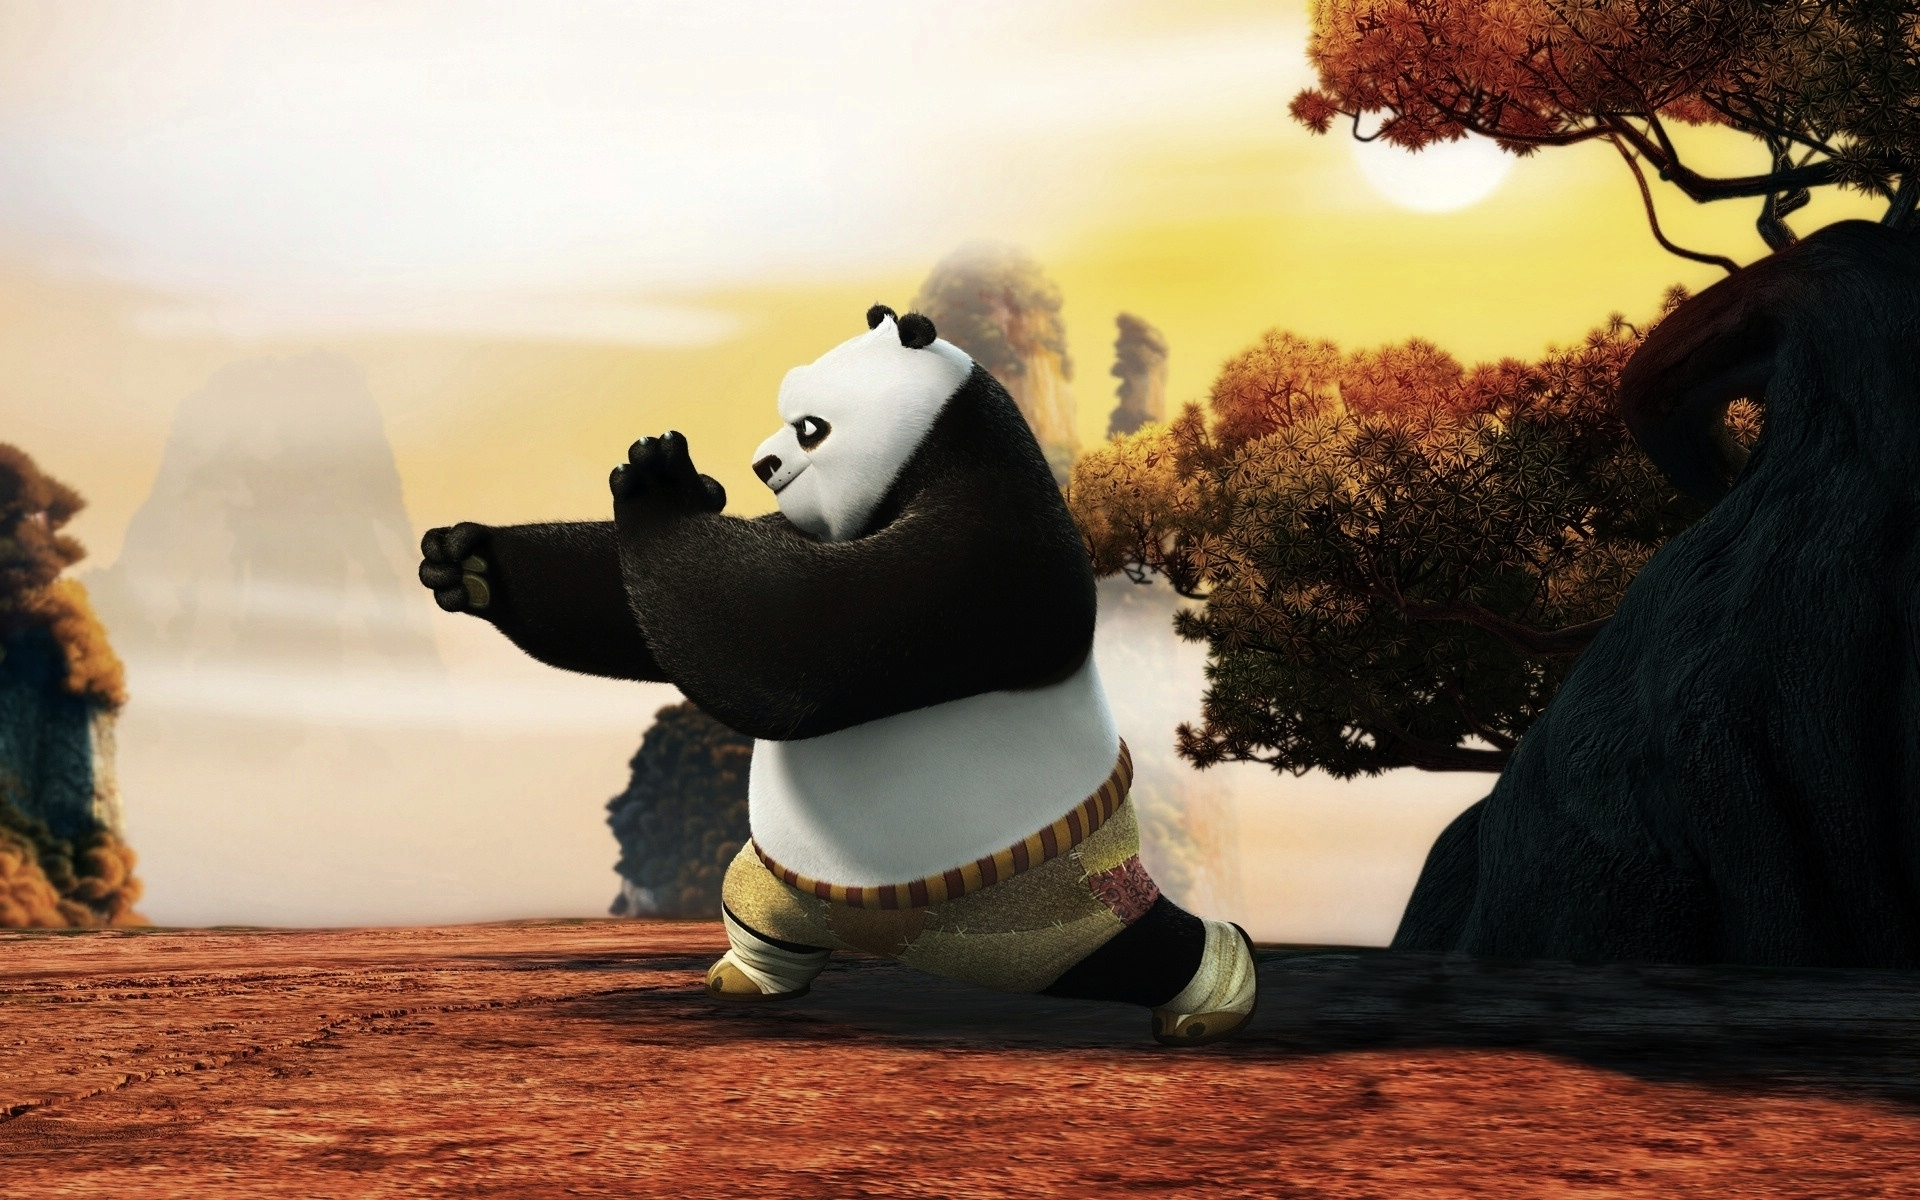 Kung fu panda iphone wallpaper - Kung Fu Panda Best Quality Wallpapers